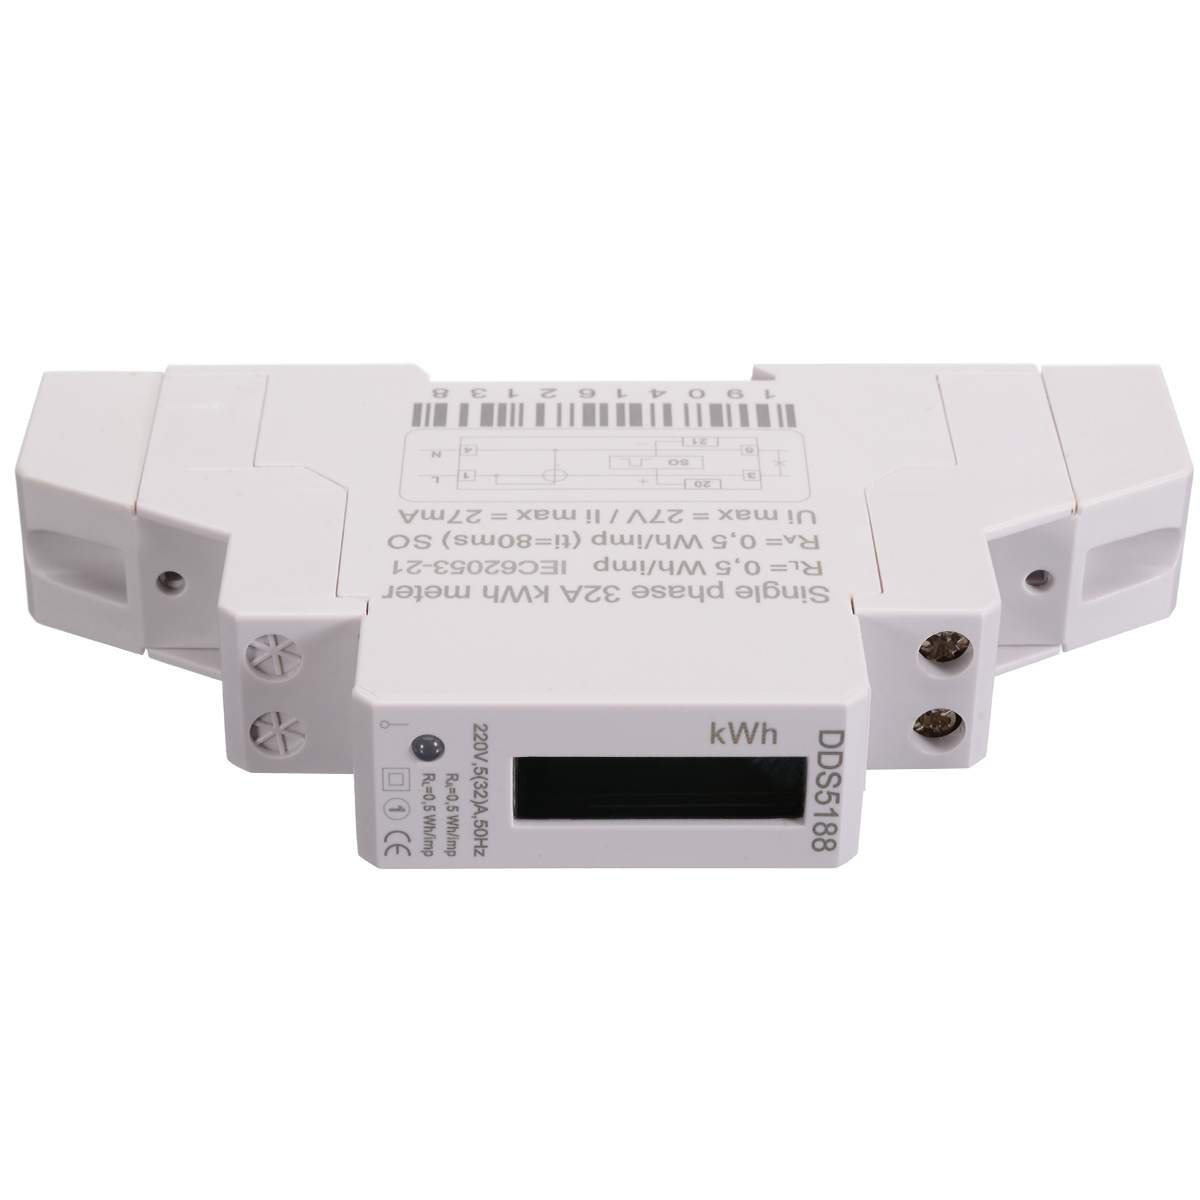 1pc DIN Rail Meter DDS5188 LED AC Meter Electric Meter KWH LCD 5 (32)A For DIN Rail With S0 Port Backlight Guide